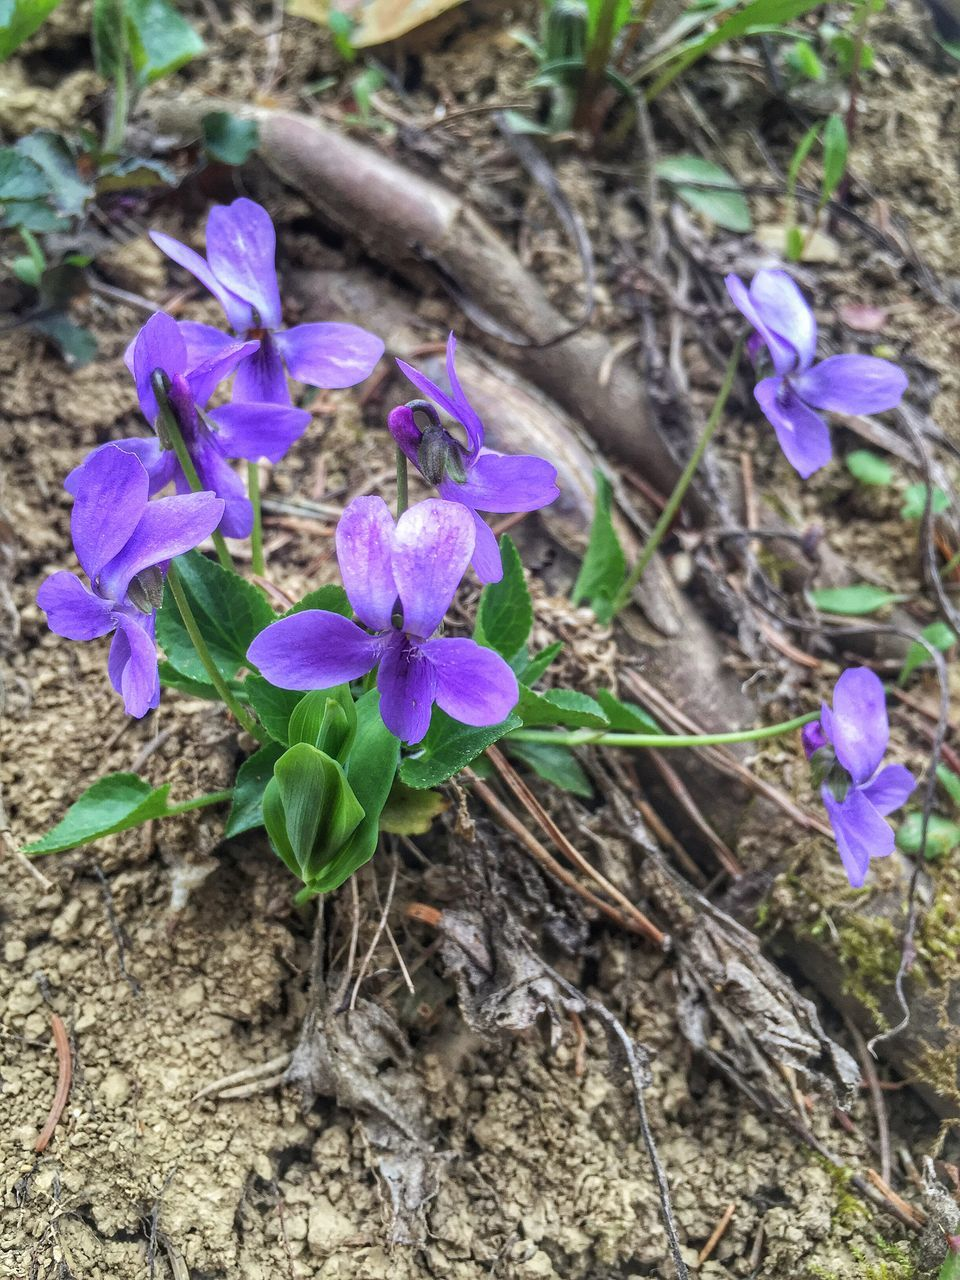 flower, purple, fragility, growth, nature, petal, plant, field, beauty in nature, no people, freshness, day, flower head, outdoors, high angle view, blooming, close-up, crocus, periwinkle